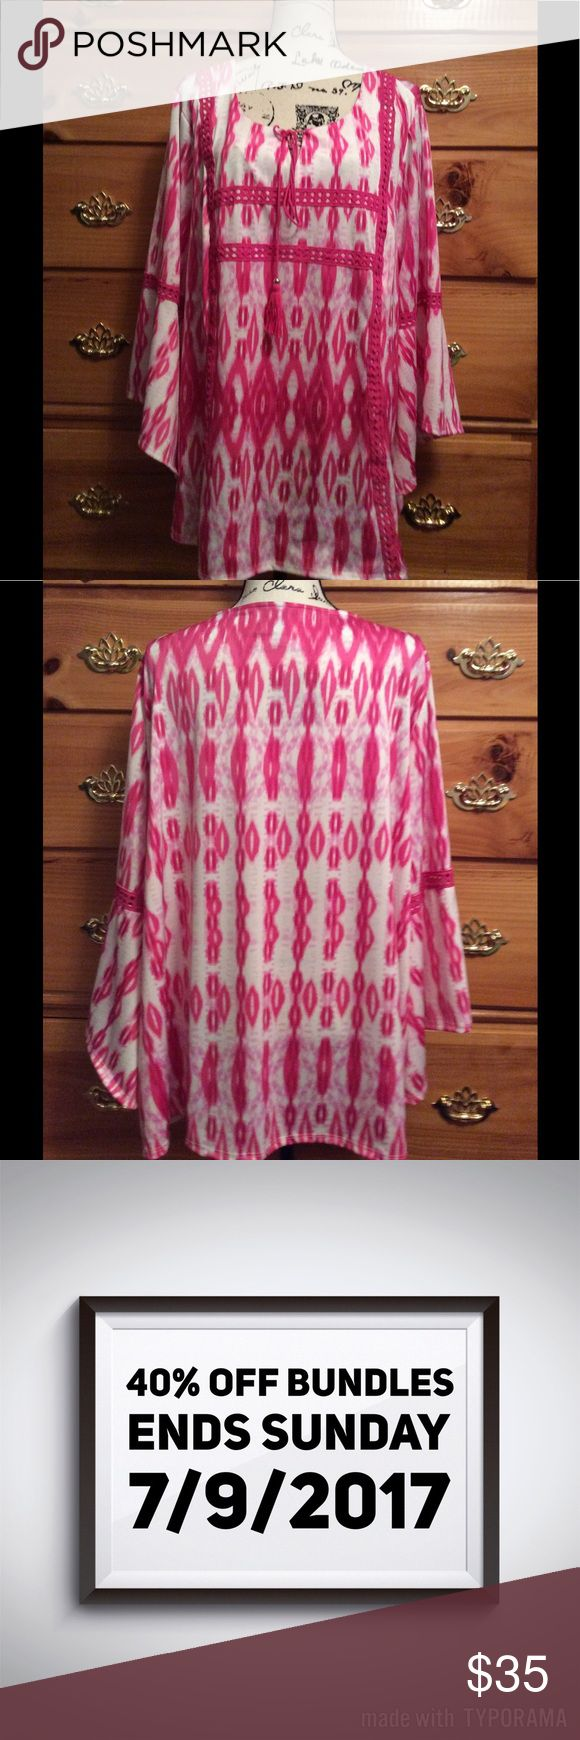 40% off Bundles 💗Boho Hot Pink Top 3X From New Directions. This is the coolest top. Size 3X, polyester Spandex blend. I love the BOHEMIAN bell style. Pretty detailing around the arms an the body of the top. Ties in the front with cute matching pink ties. Worn 1 time. In mint condition as close as new as it can be. new directions Tops Blouses